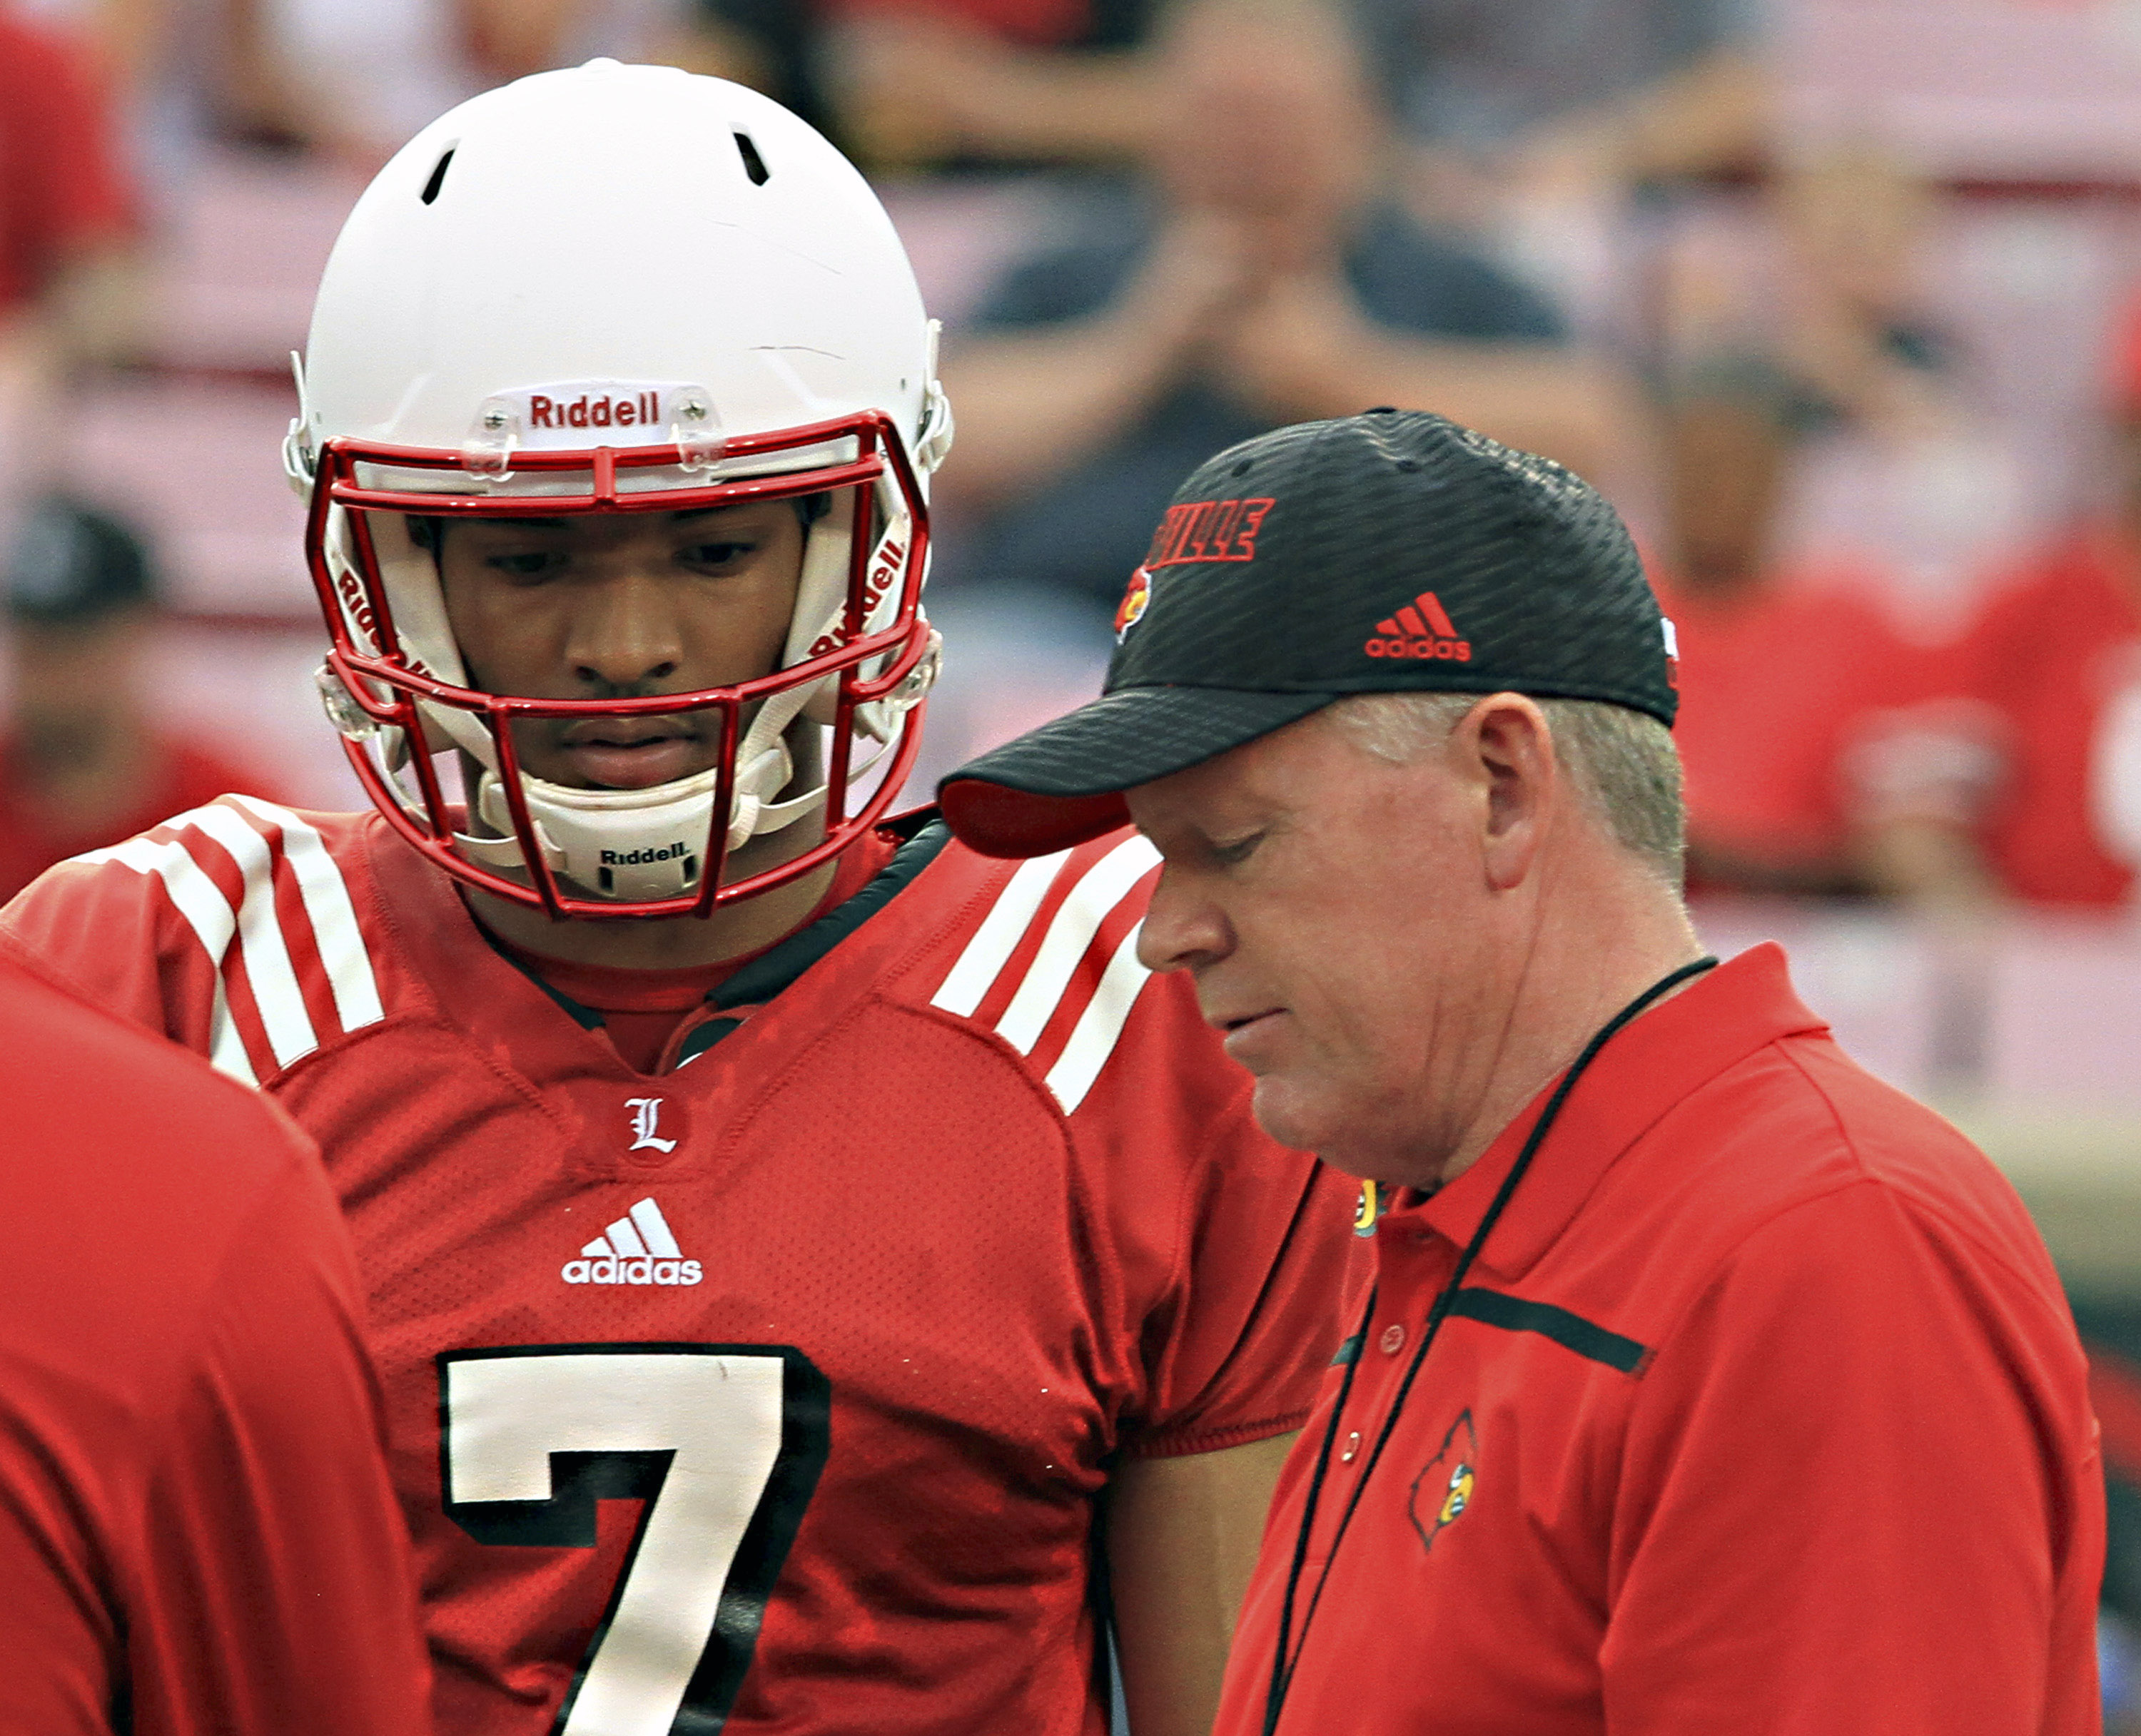 FILE - In this April 17, 2015, file photo, Louisville head football coach Bobby Petrino, right, talks over a play call with quarterback Reggie Bonnafon (7) during the annual spring football scrimmage game at Cardinal Stadium in Louisville, Ky. Having two